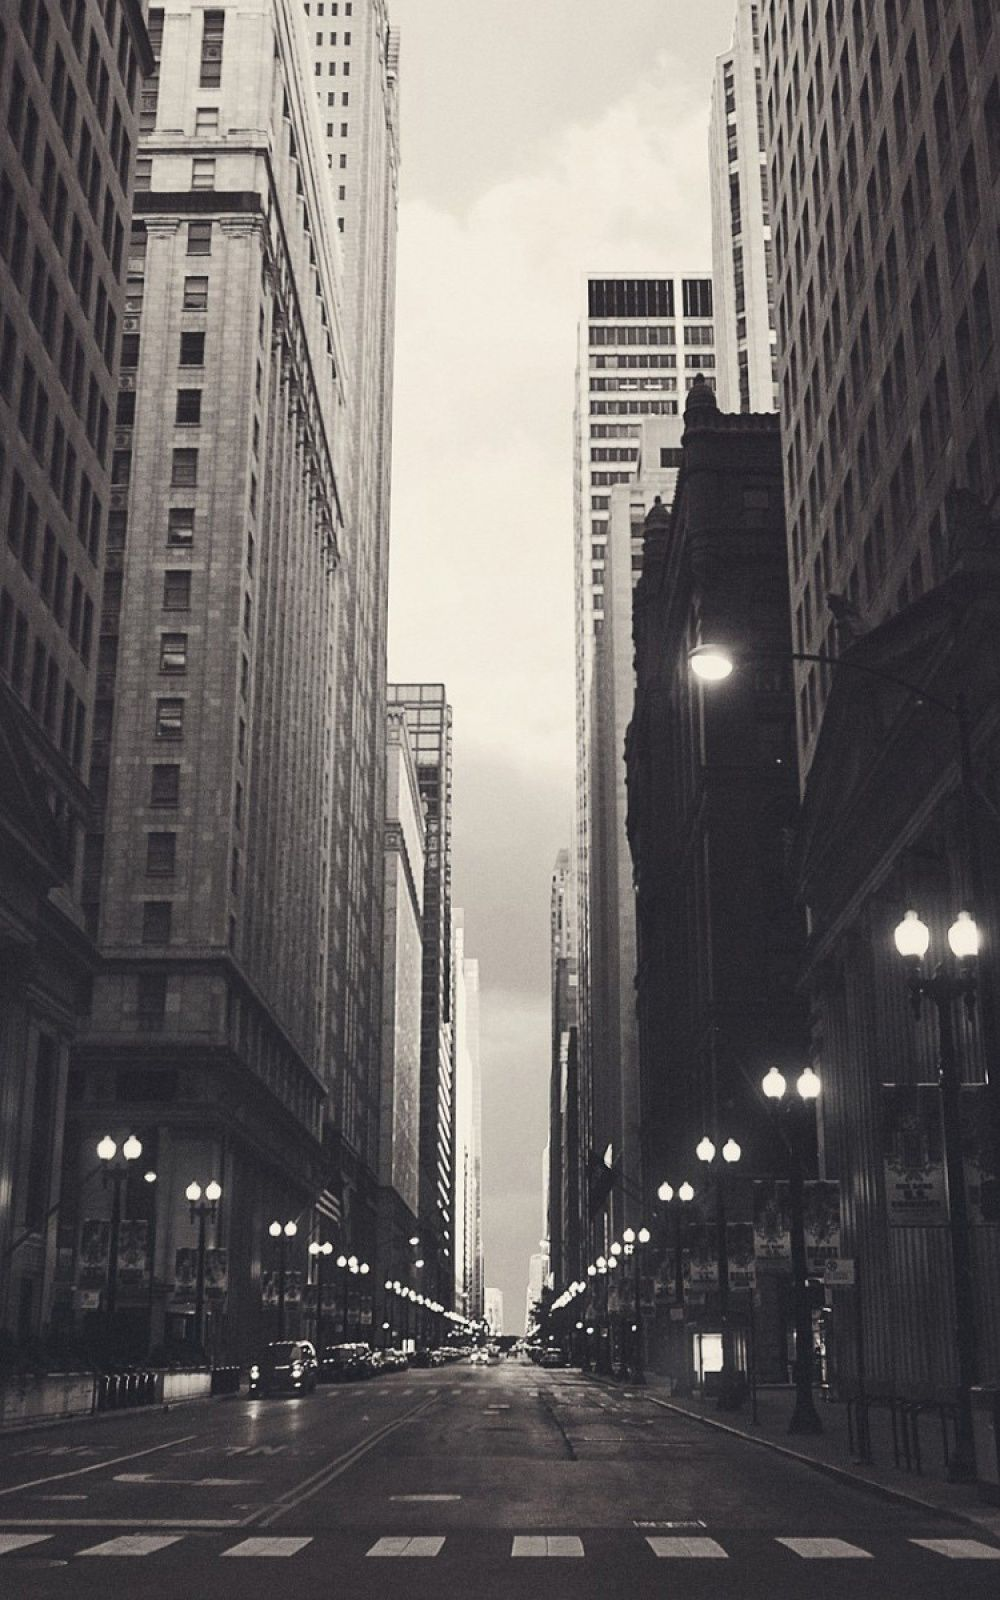 Chicago Usa Black And White Streetview Iphone 6 Plus Hd Wallpaper